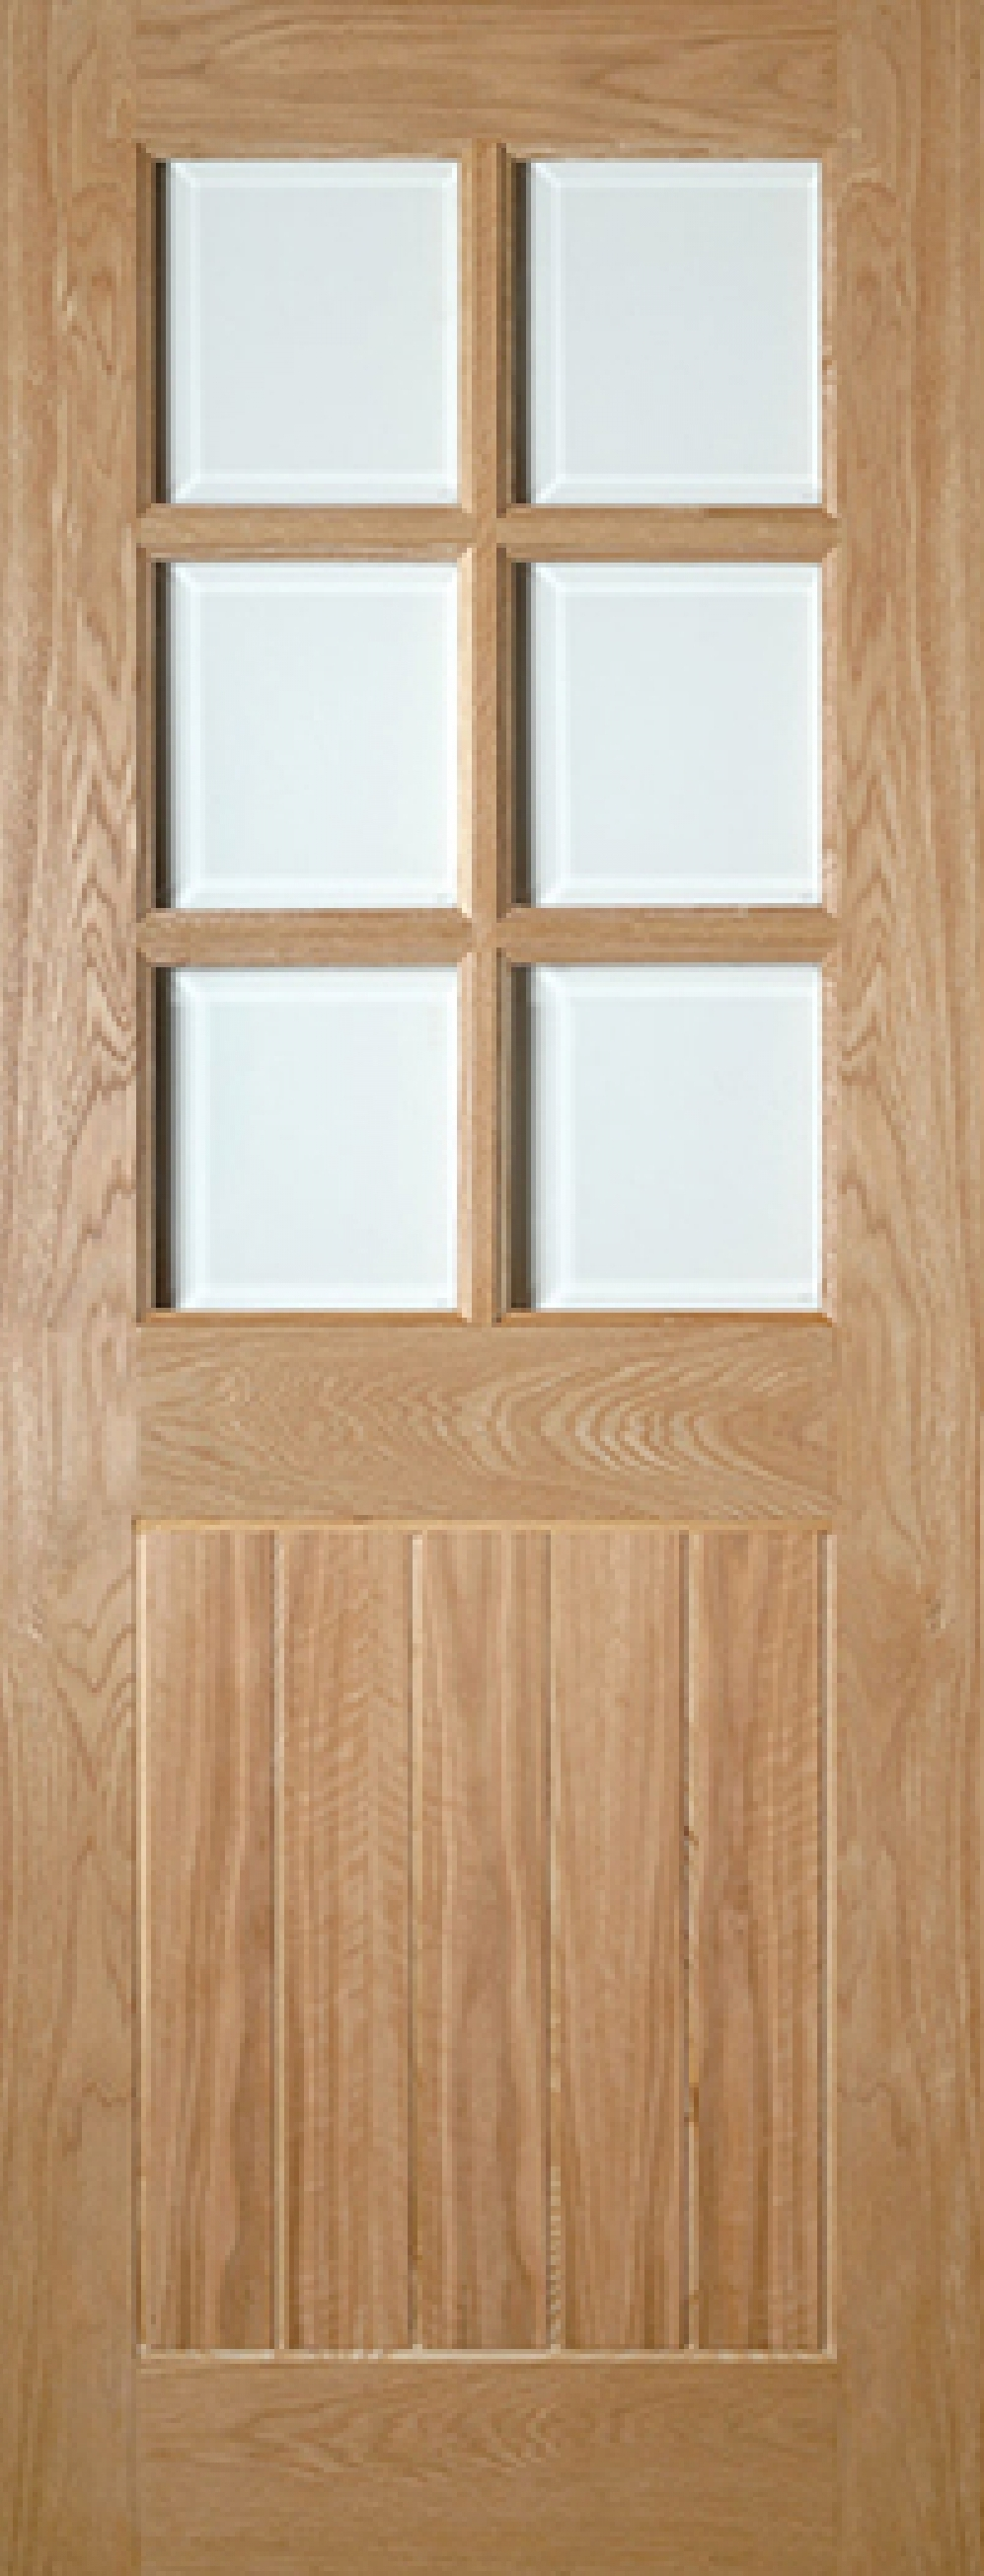 Ely Glazed Oak Door - Prefinished